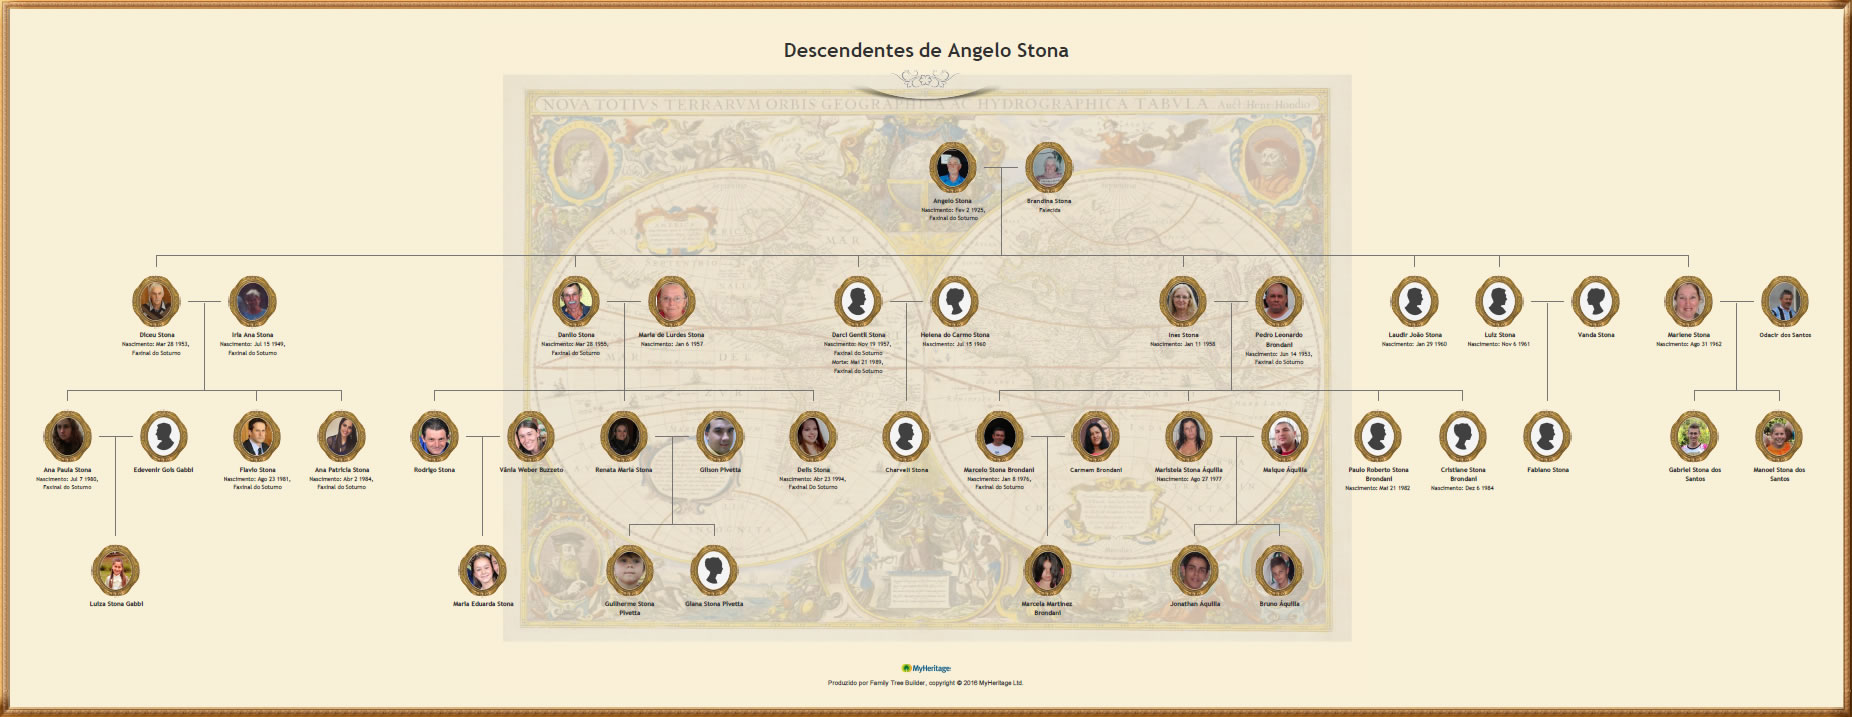 Descendentes de Angelo Stona